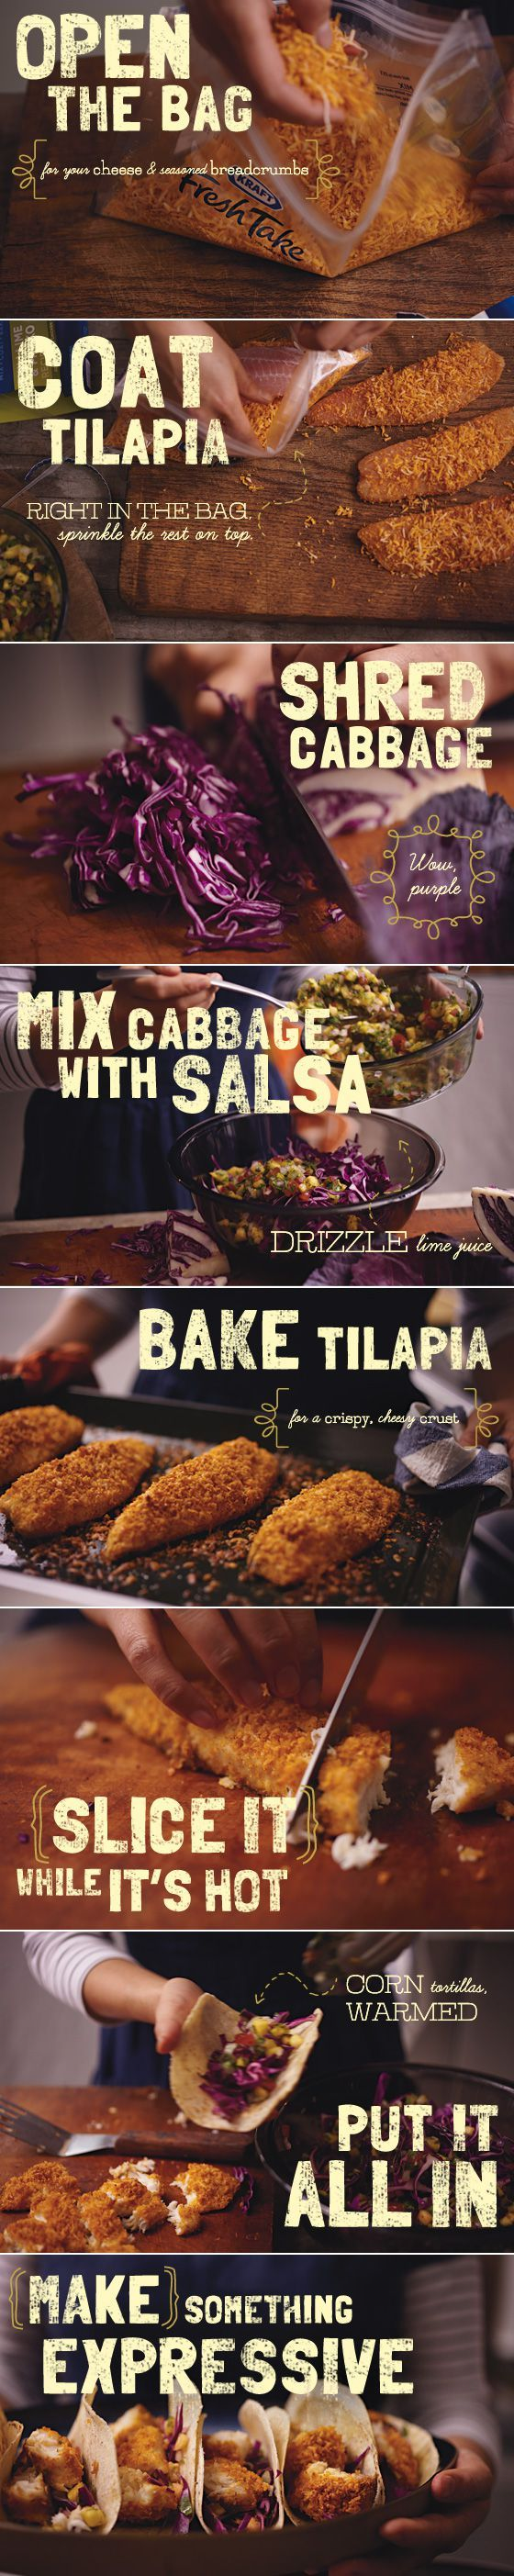 Tilapia Tacos - kind of only pinning this to see how the fish is prepared...maybe I can make something like my own homemade fish sticks. Only fish I'll eat XD